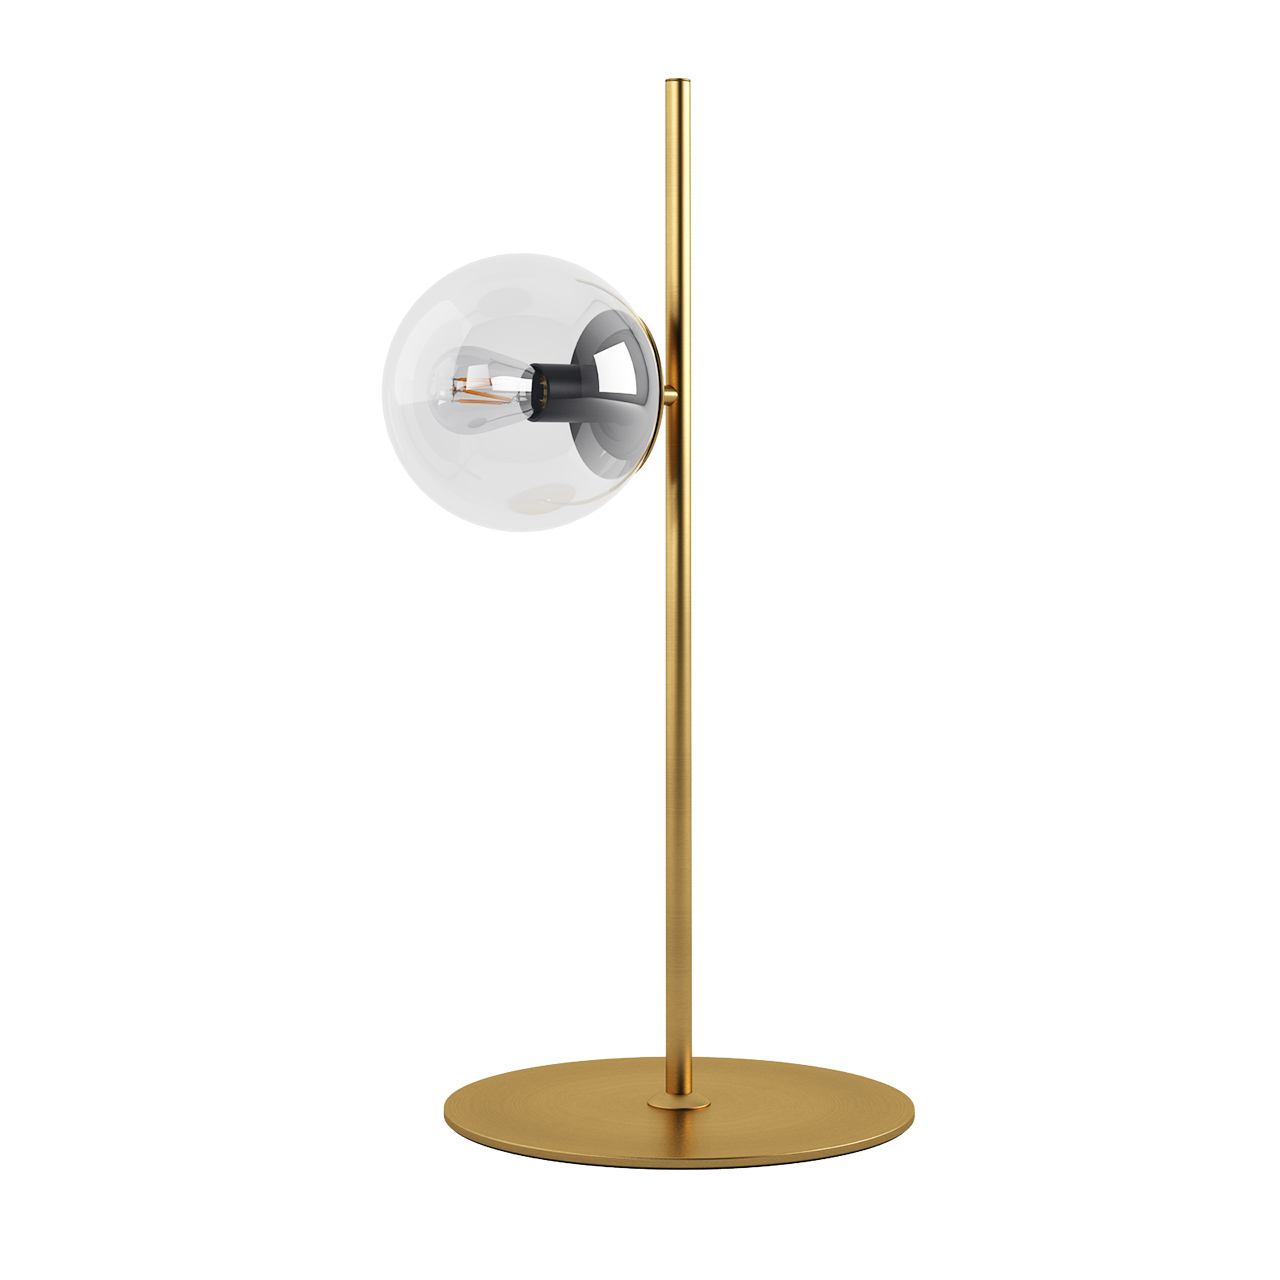 Orb Table Lamp by Bolia